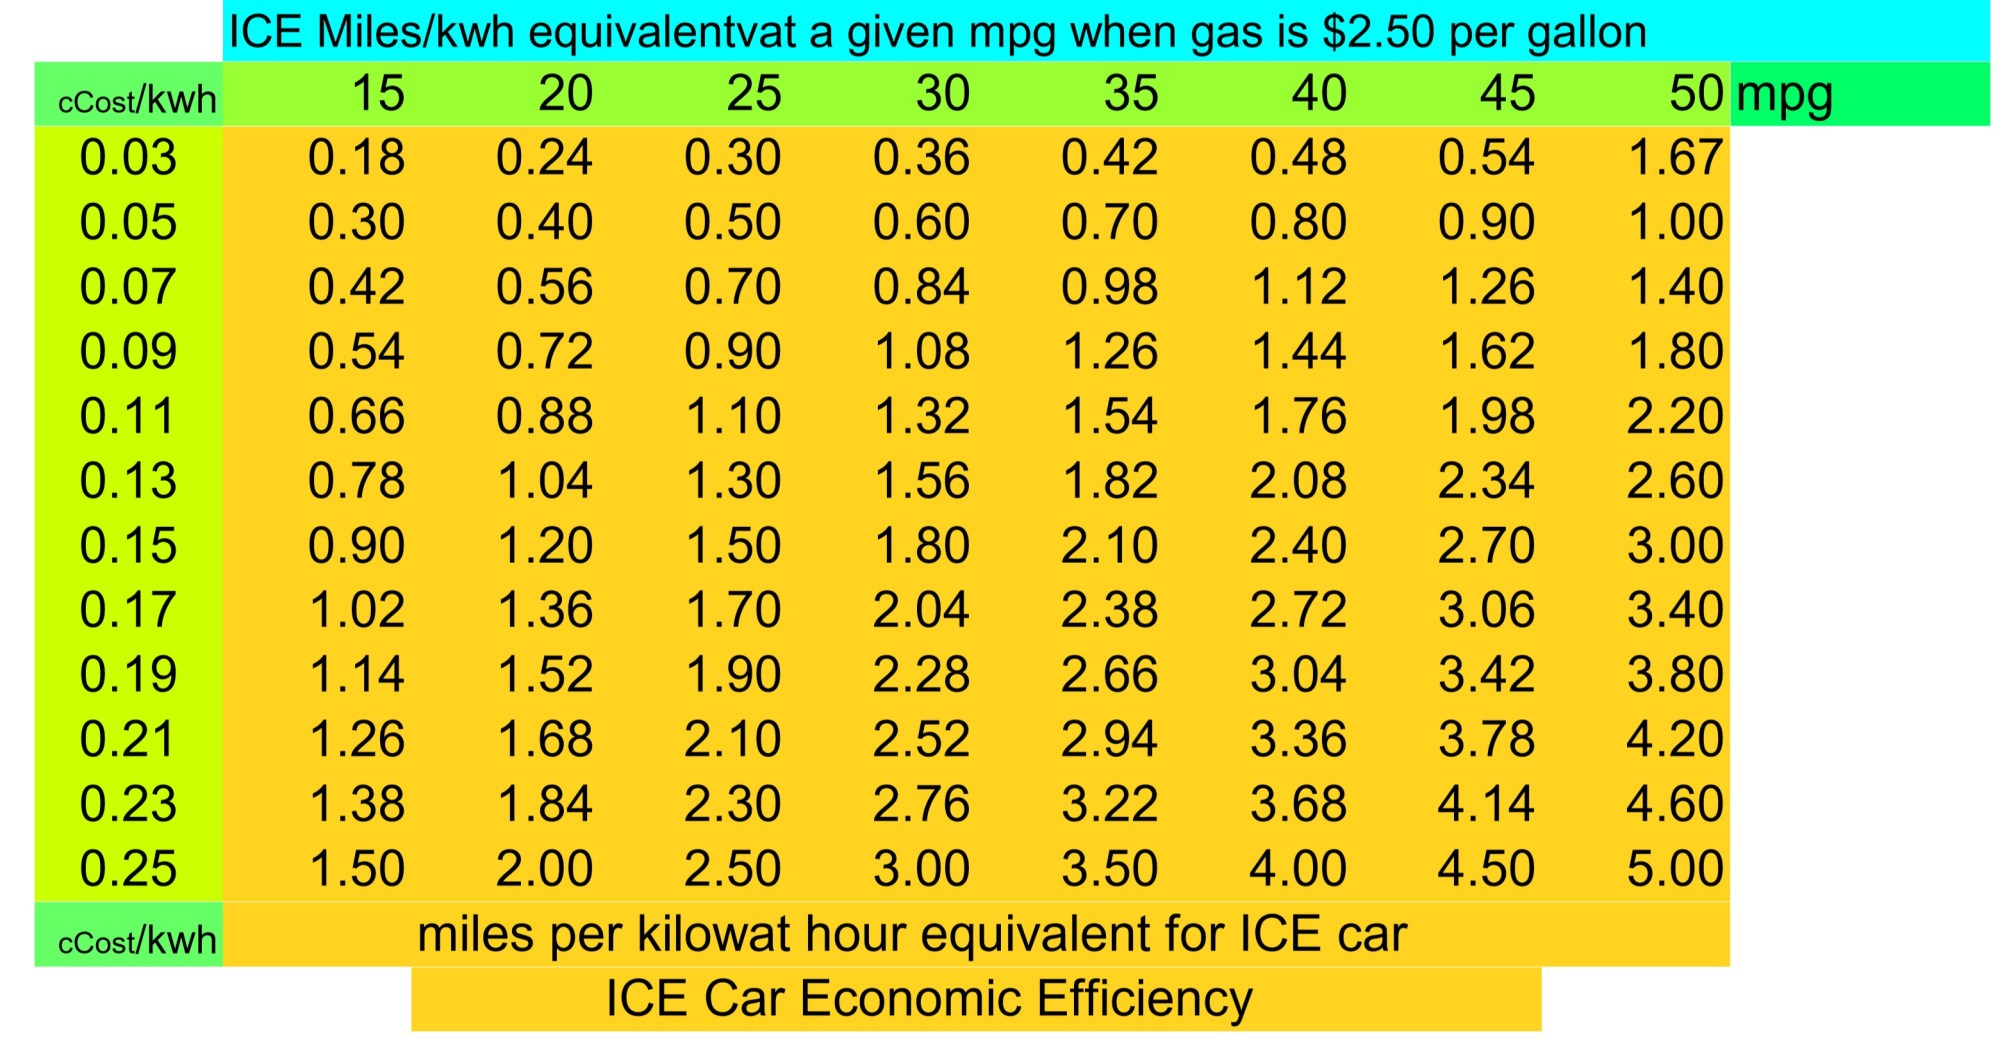 hight resolution of fwiw you can compare your bolt to gas cars of different economic efficiencies